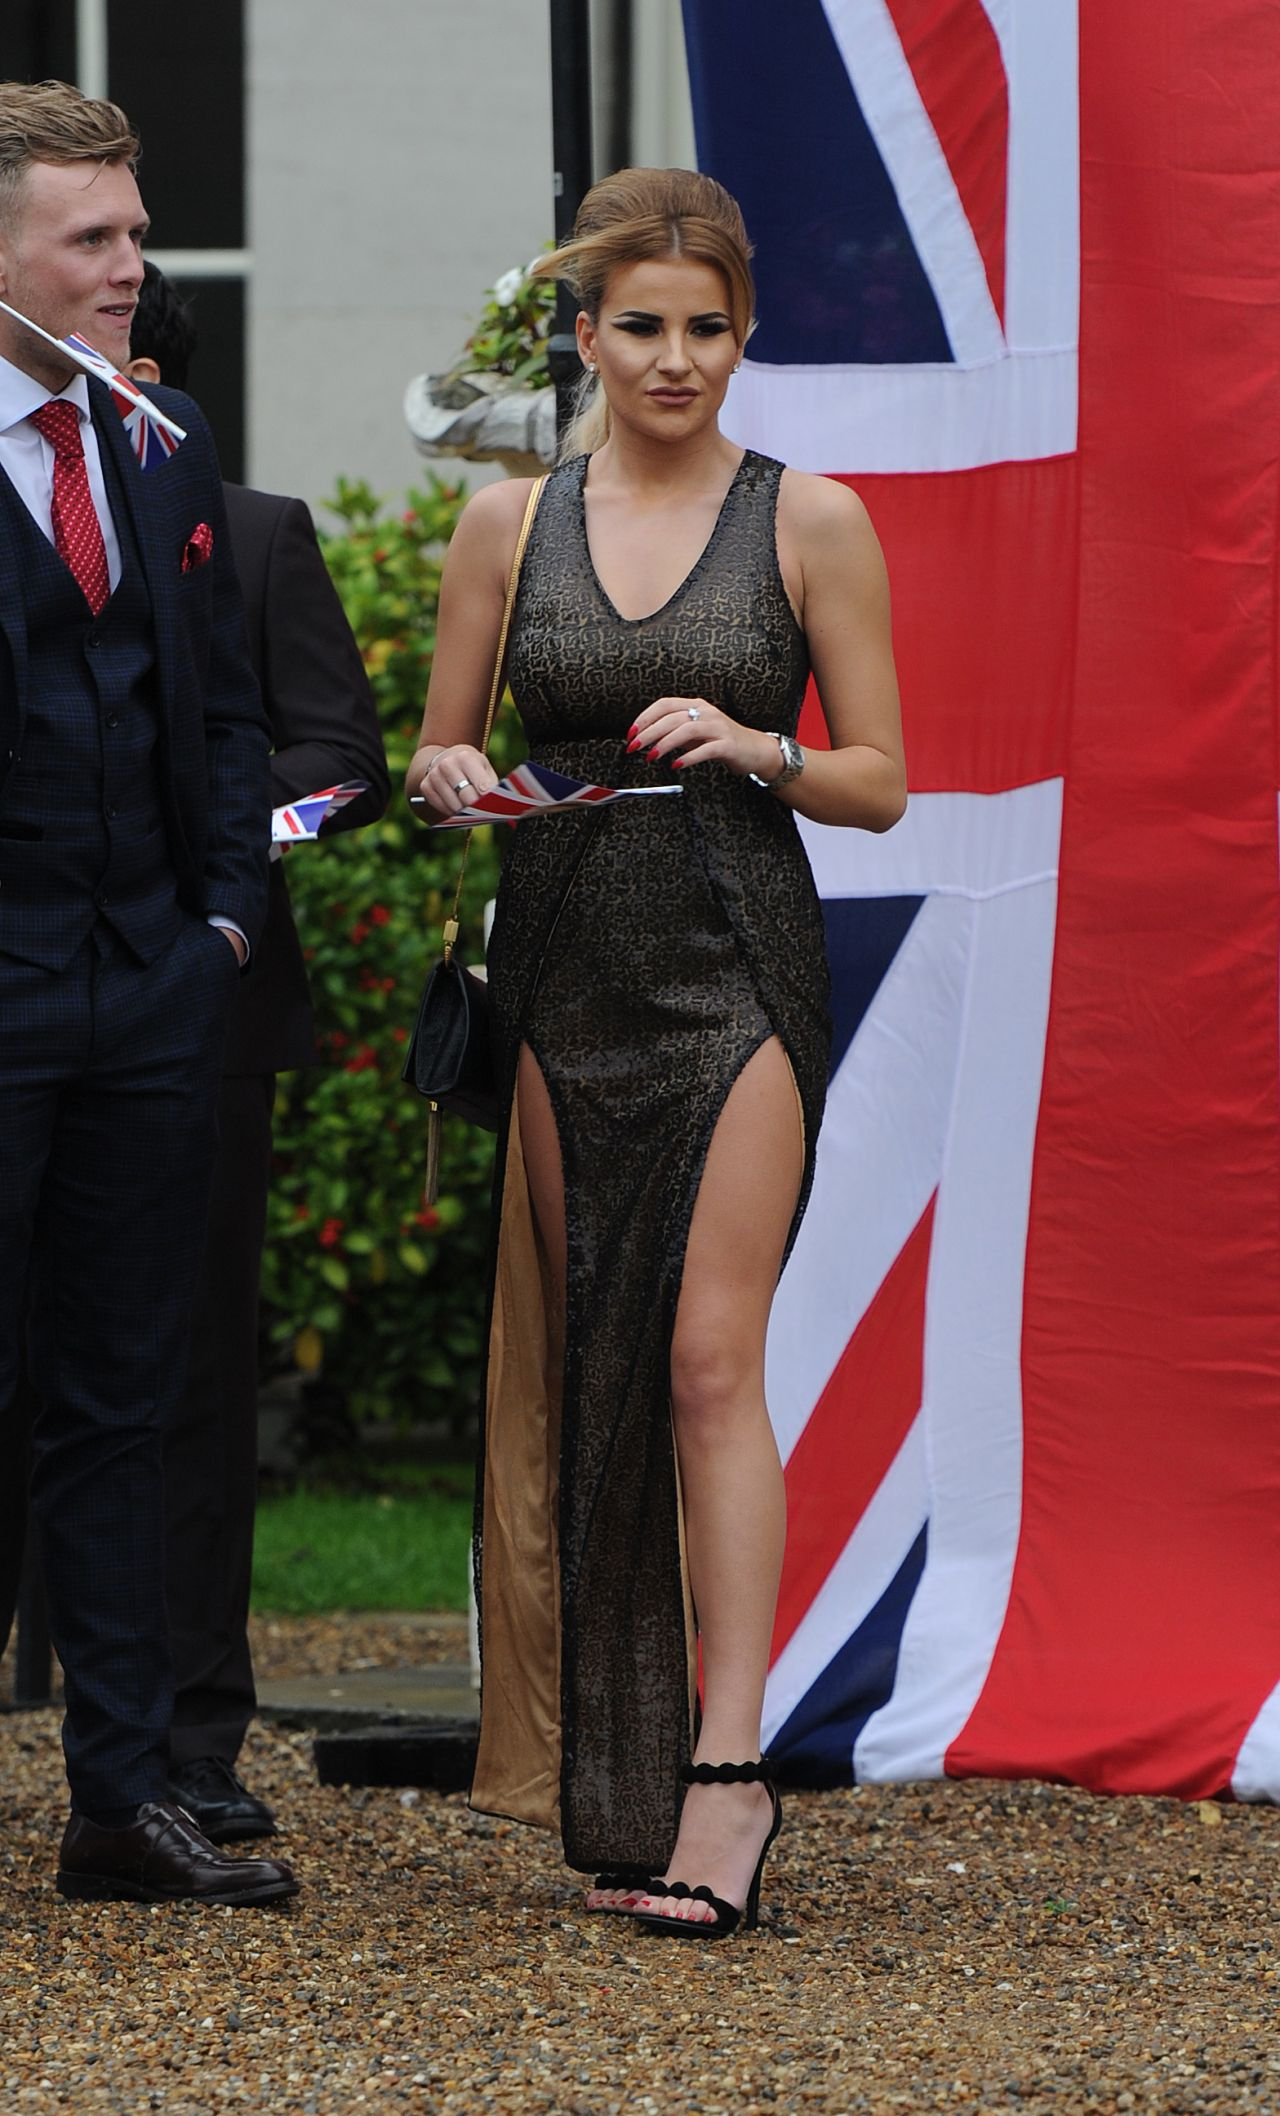 georgia-kousoulou-towie-cast-film-nanny-pats-royal-80th-birthday-party-croydon-in-london_1 Towie Cast Film Their Royal Wedding Theme Finale They Celebrated Nanny Pats Birthday At Addington Palace In Croydon She Was The Queen And The Cast Had